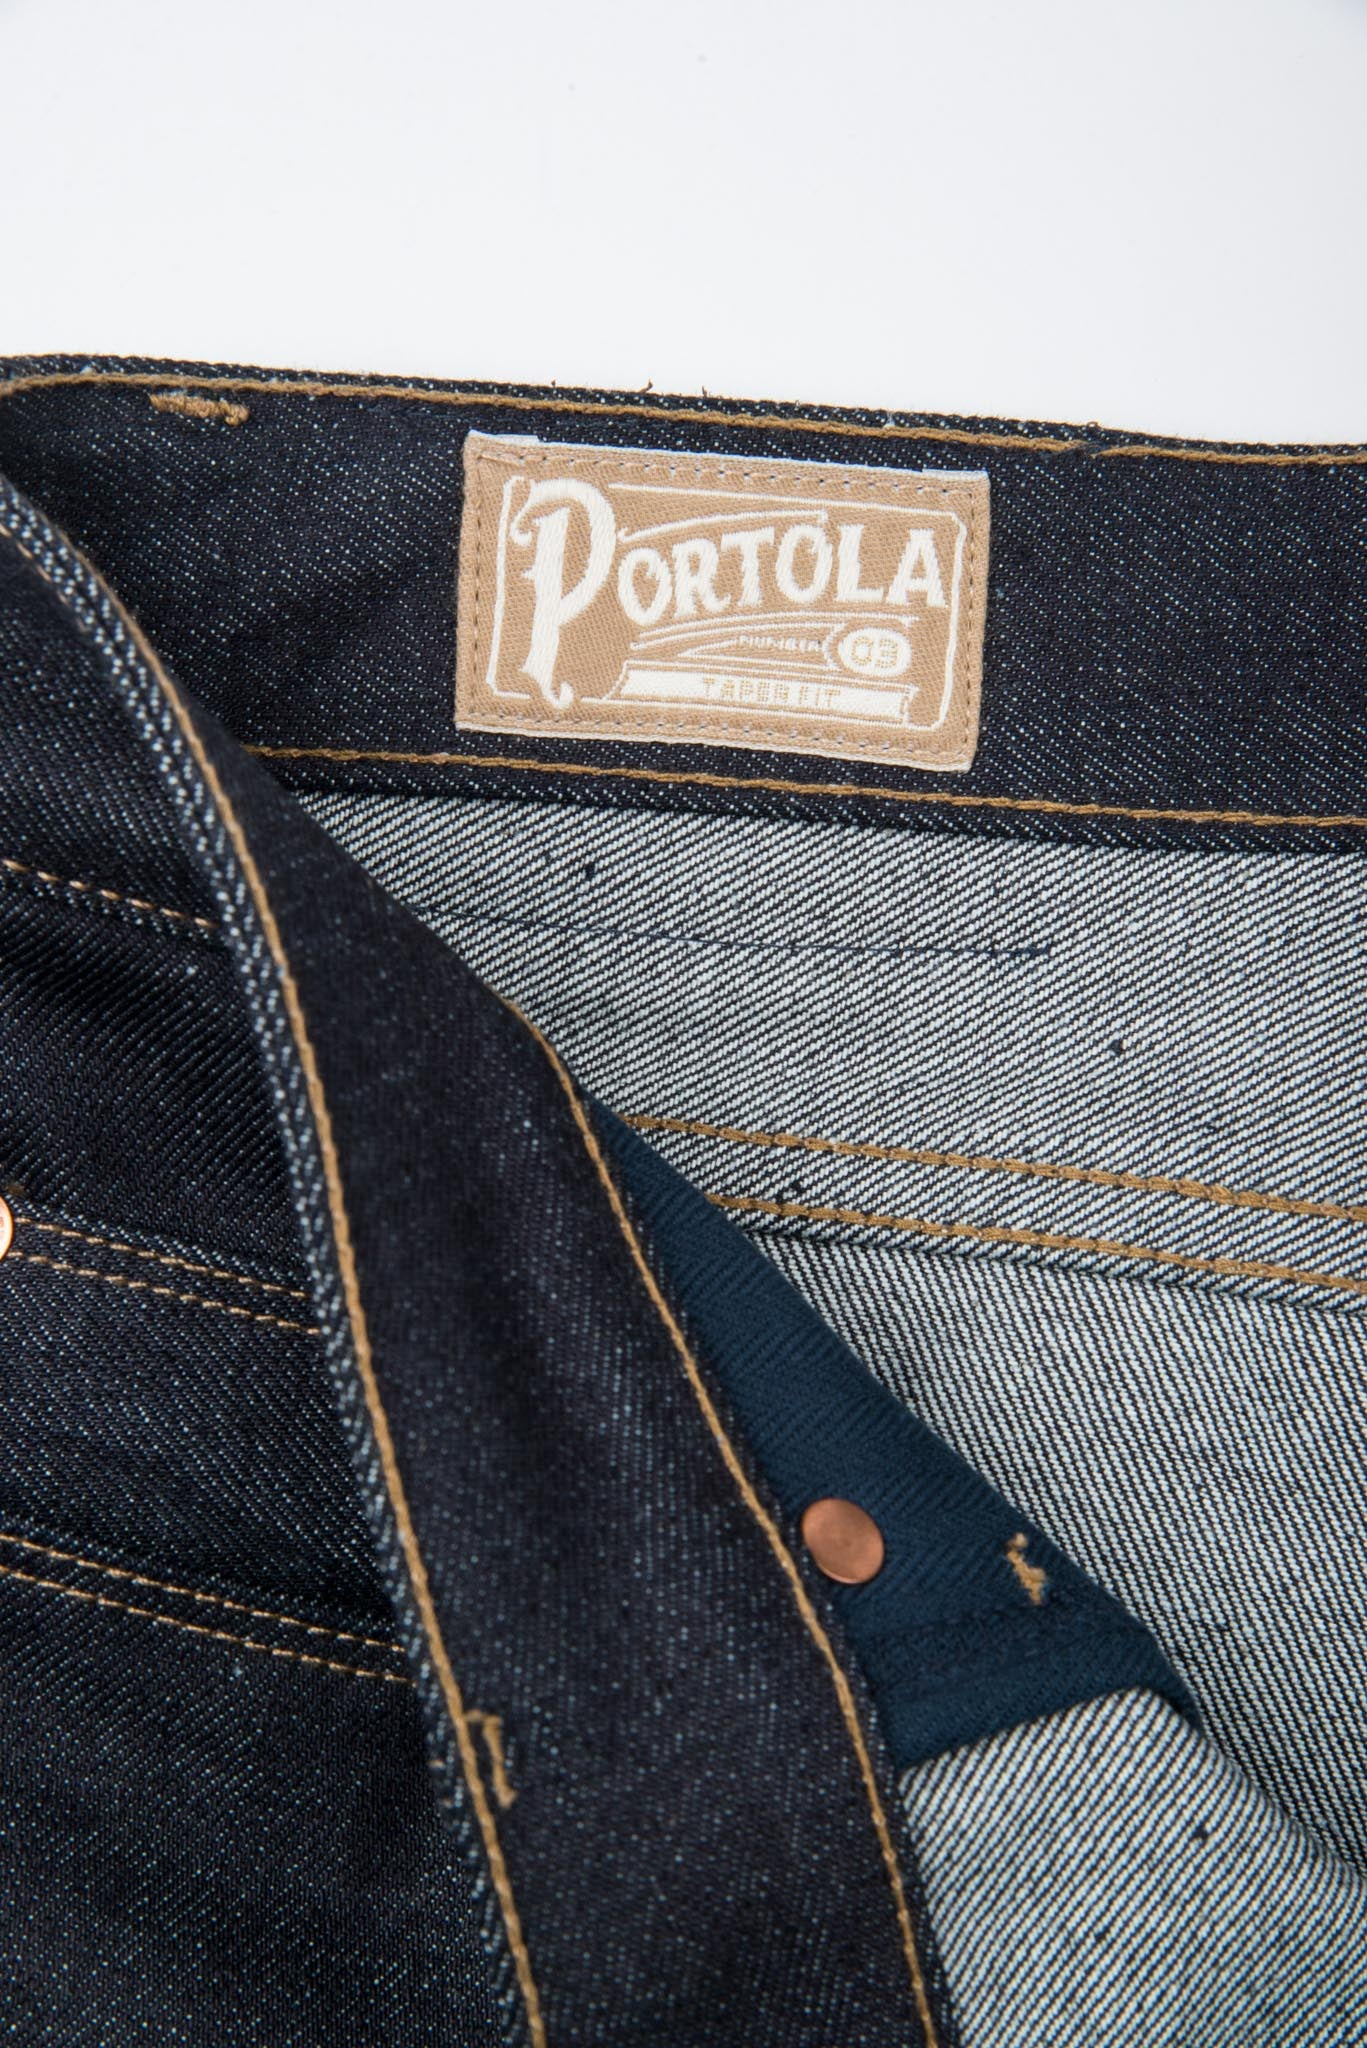 Portola Taper <span> 14.50 ounce Kaihara Denim </span>